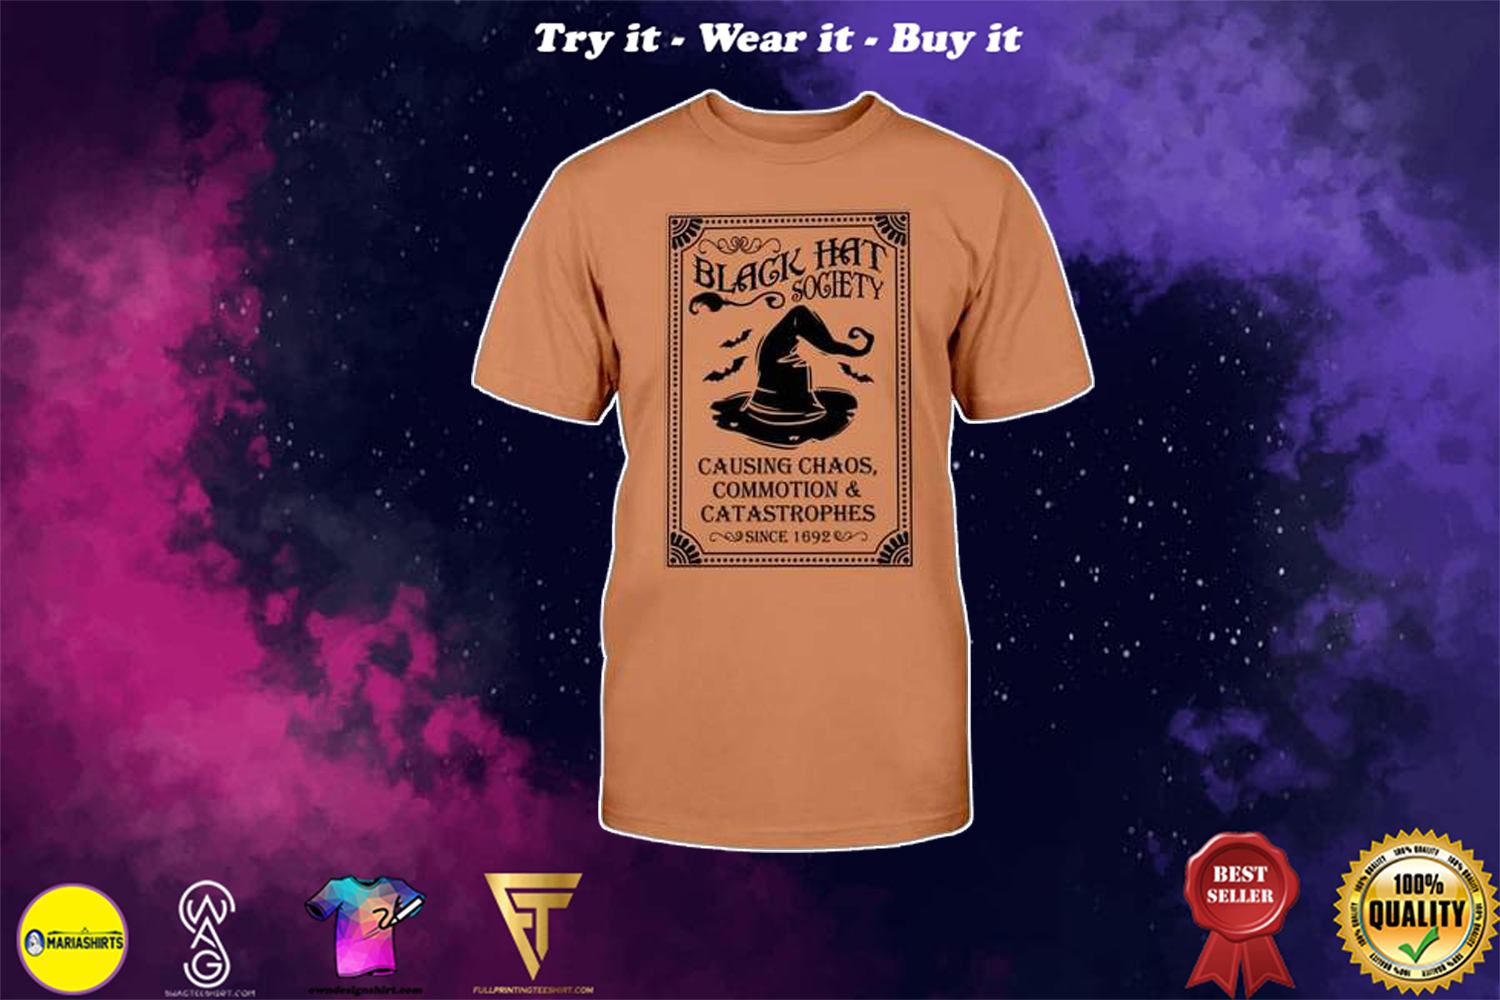 Halloween black hat society causing chaos commotion and catastrophes shirt